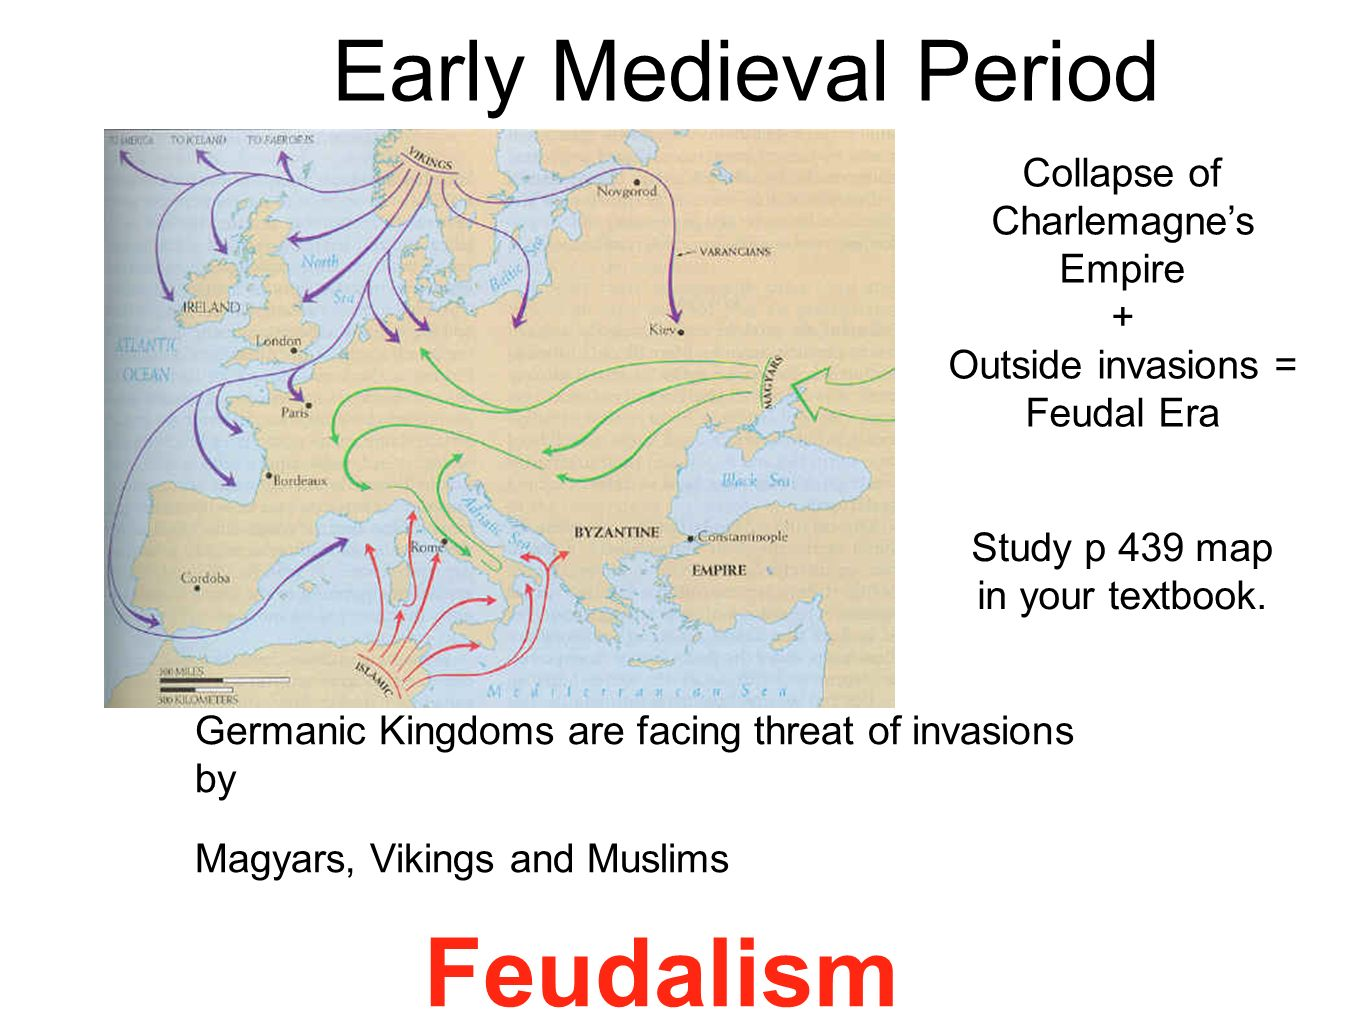 an analysis of early medieval period Find out more about the history of middle ages, including videos people who lived on the european continent instead, the catholic church became the most powerful institution of the medieval period surgical instruments, an early flying machine and the system of numerals that.